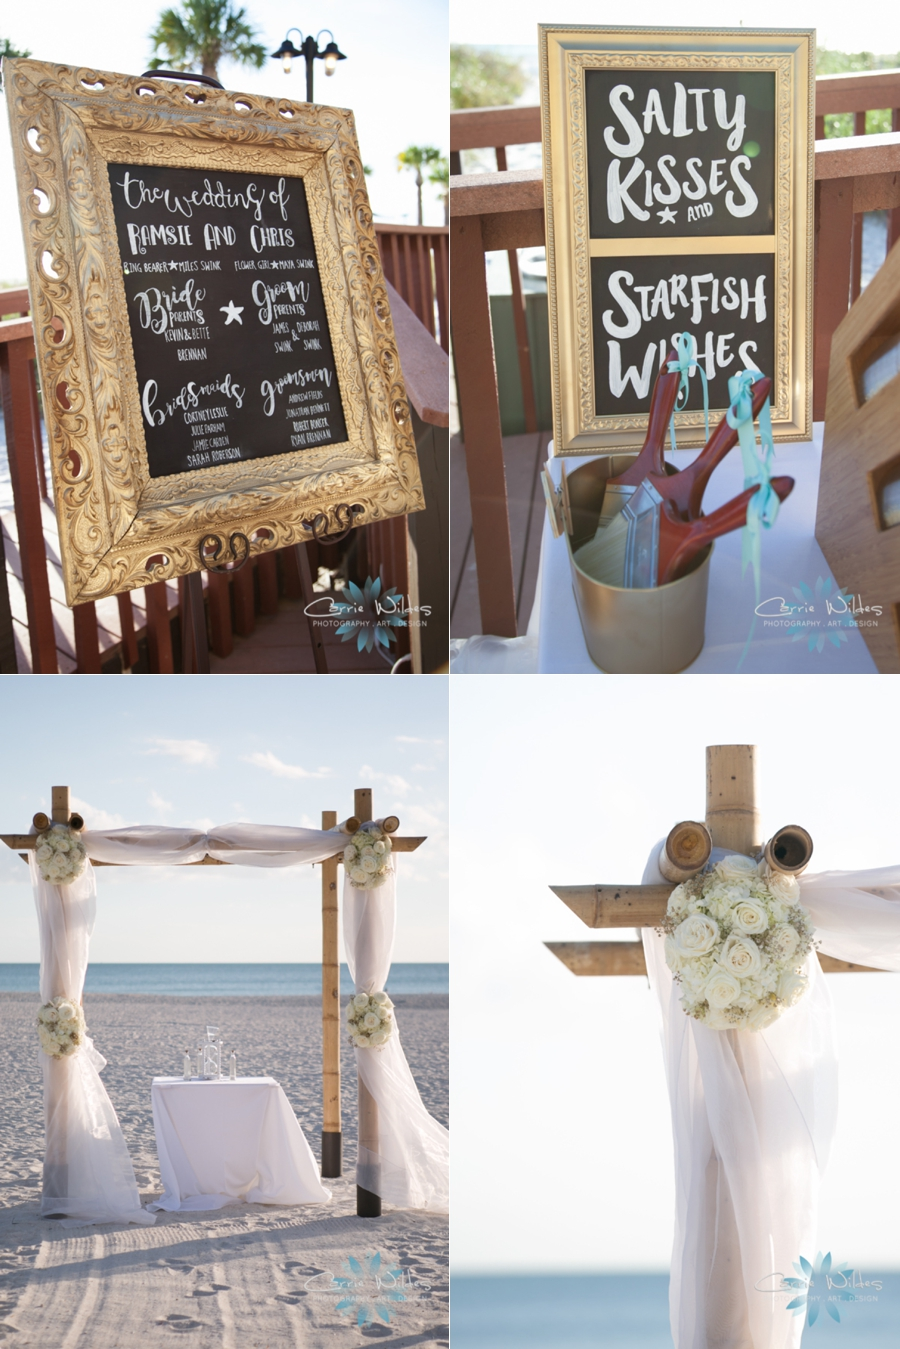 10_14_16 Sirata Beach Resort Wedding_0011.jpg